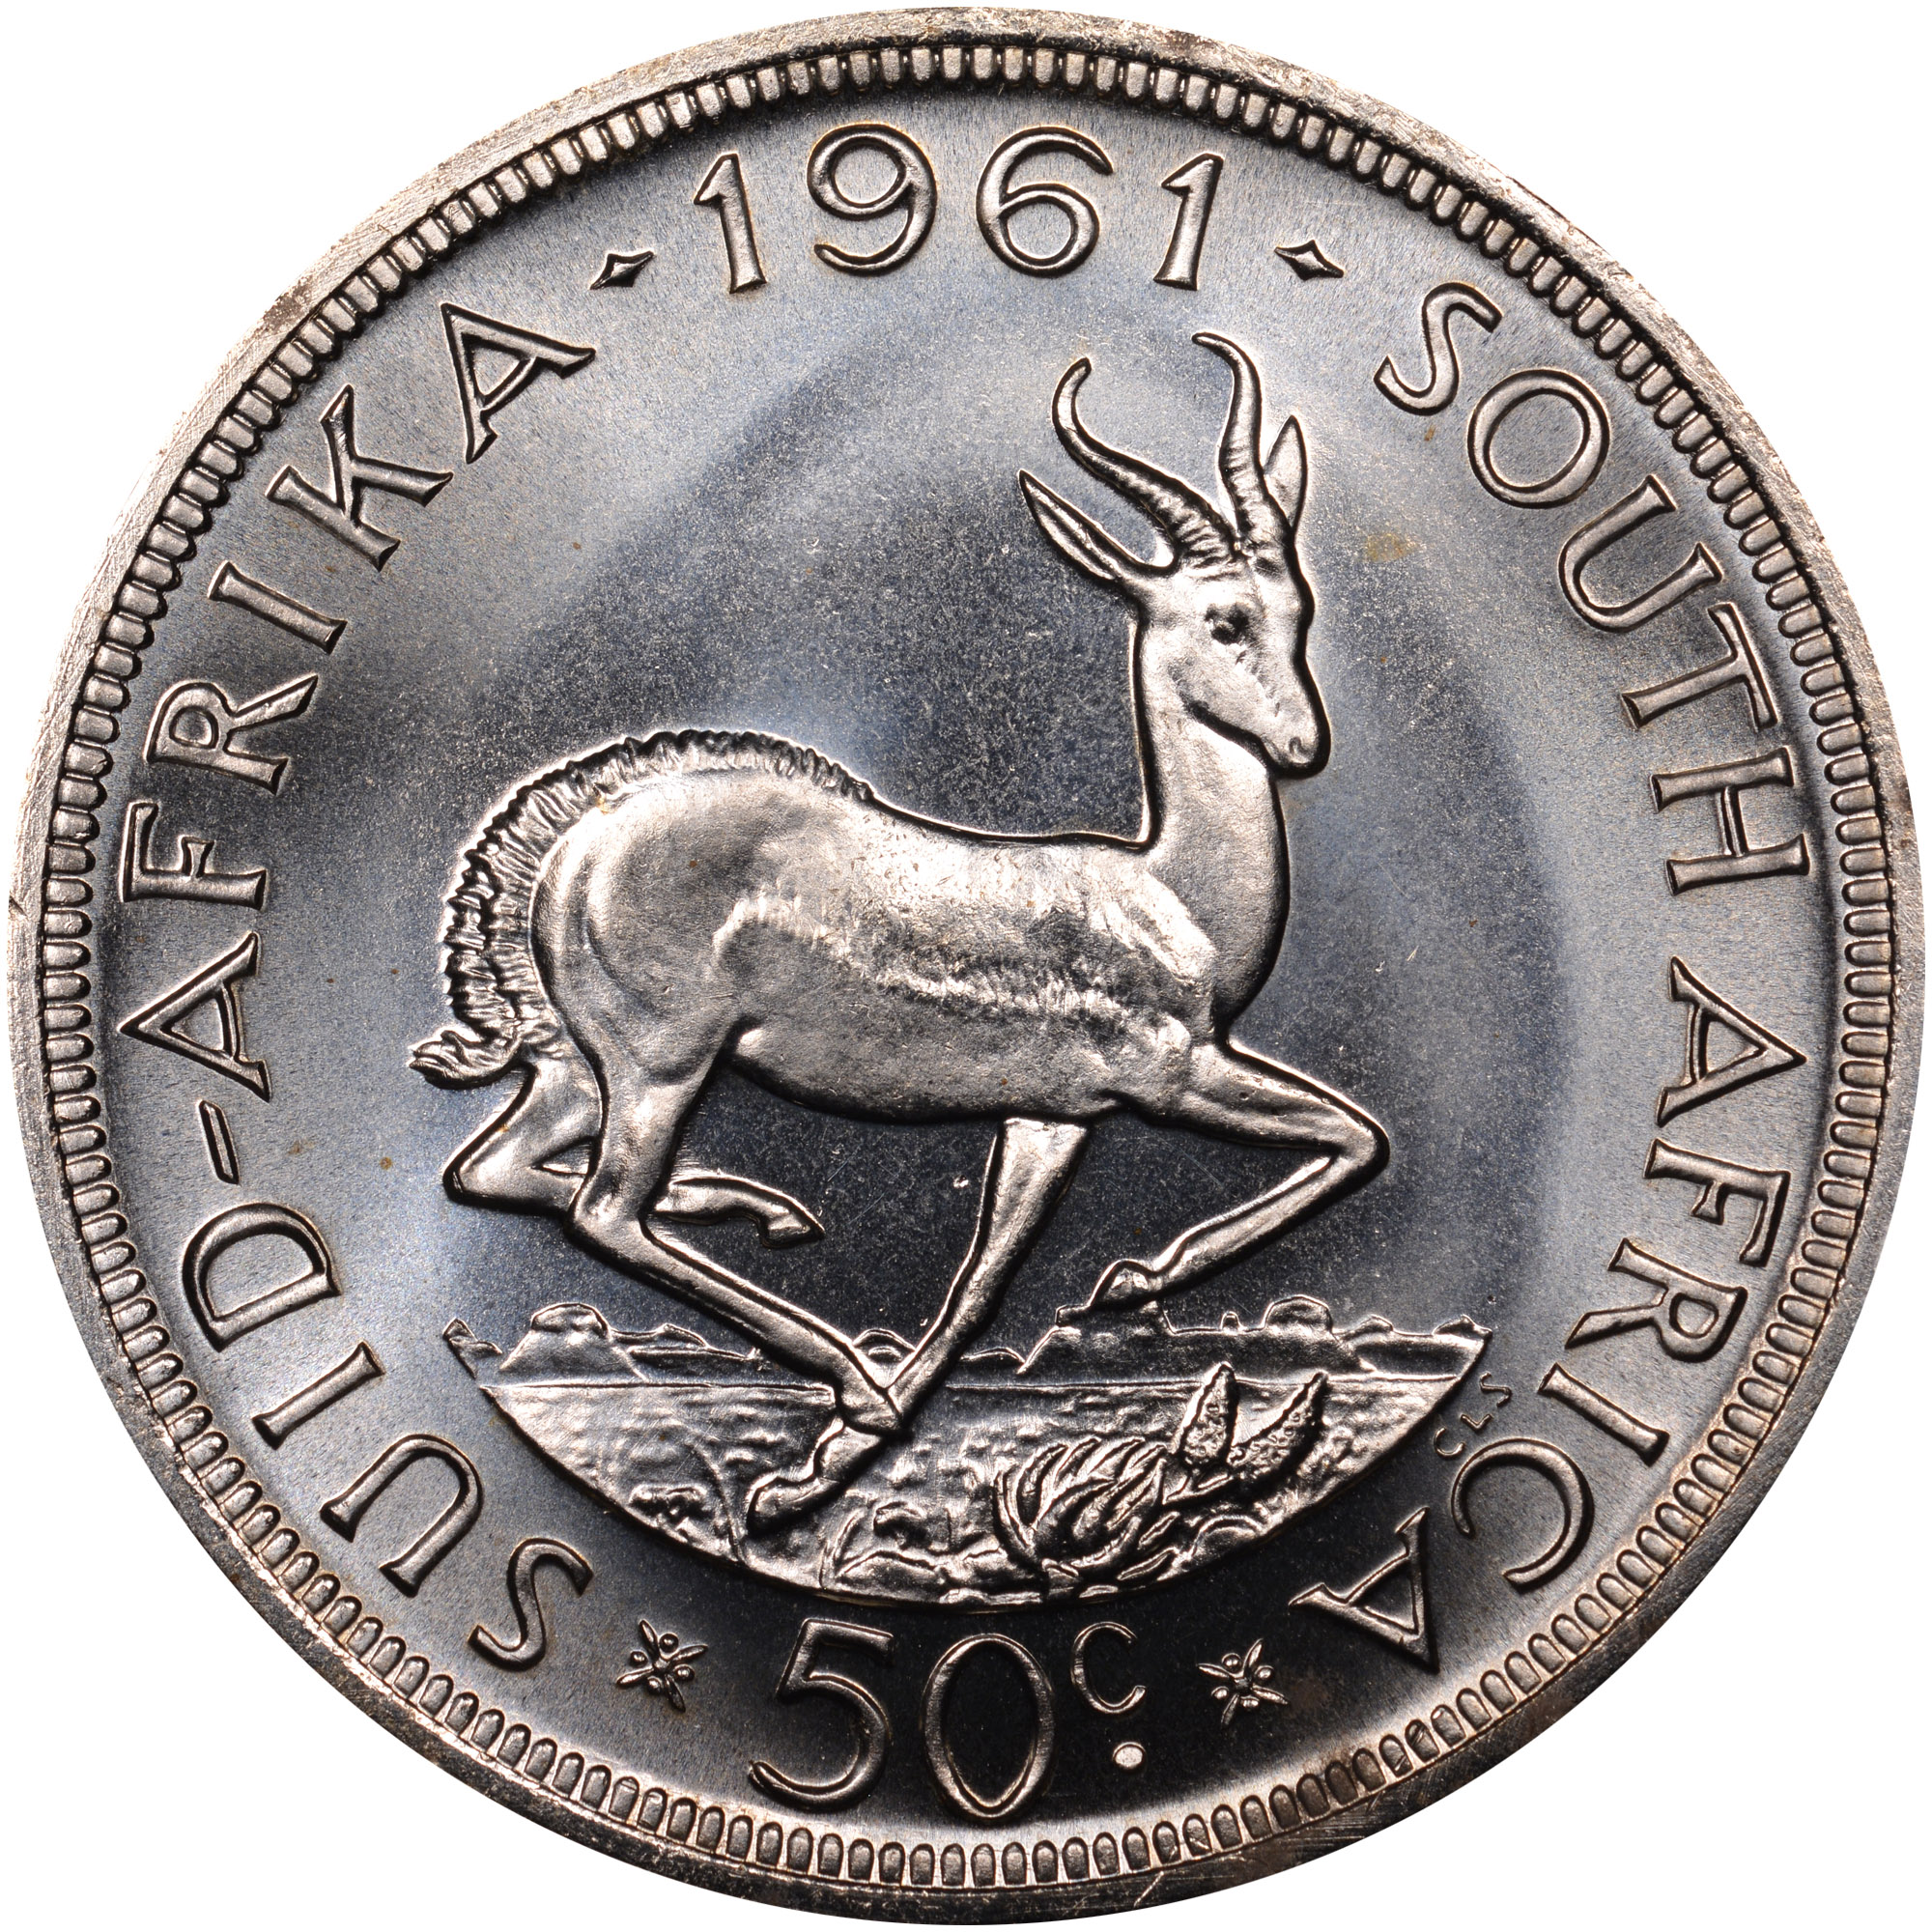 South Africa 50 Cents Km 62 Prices Amp Values